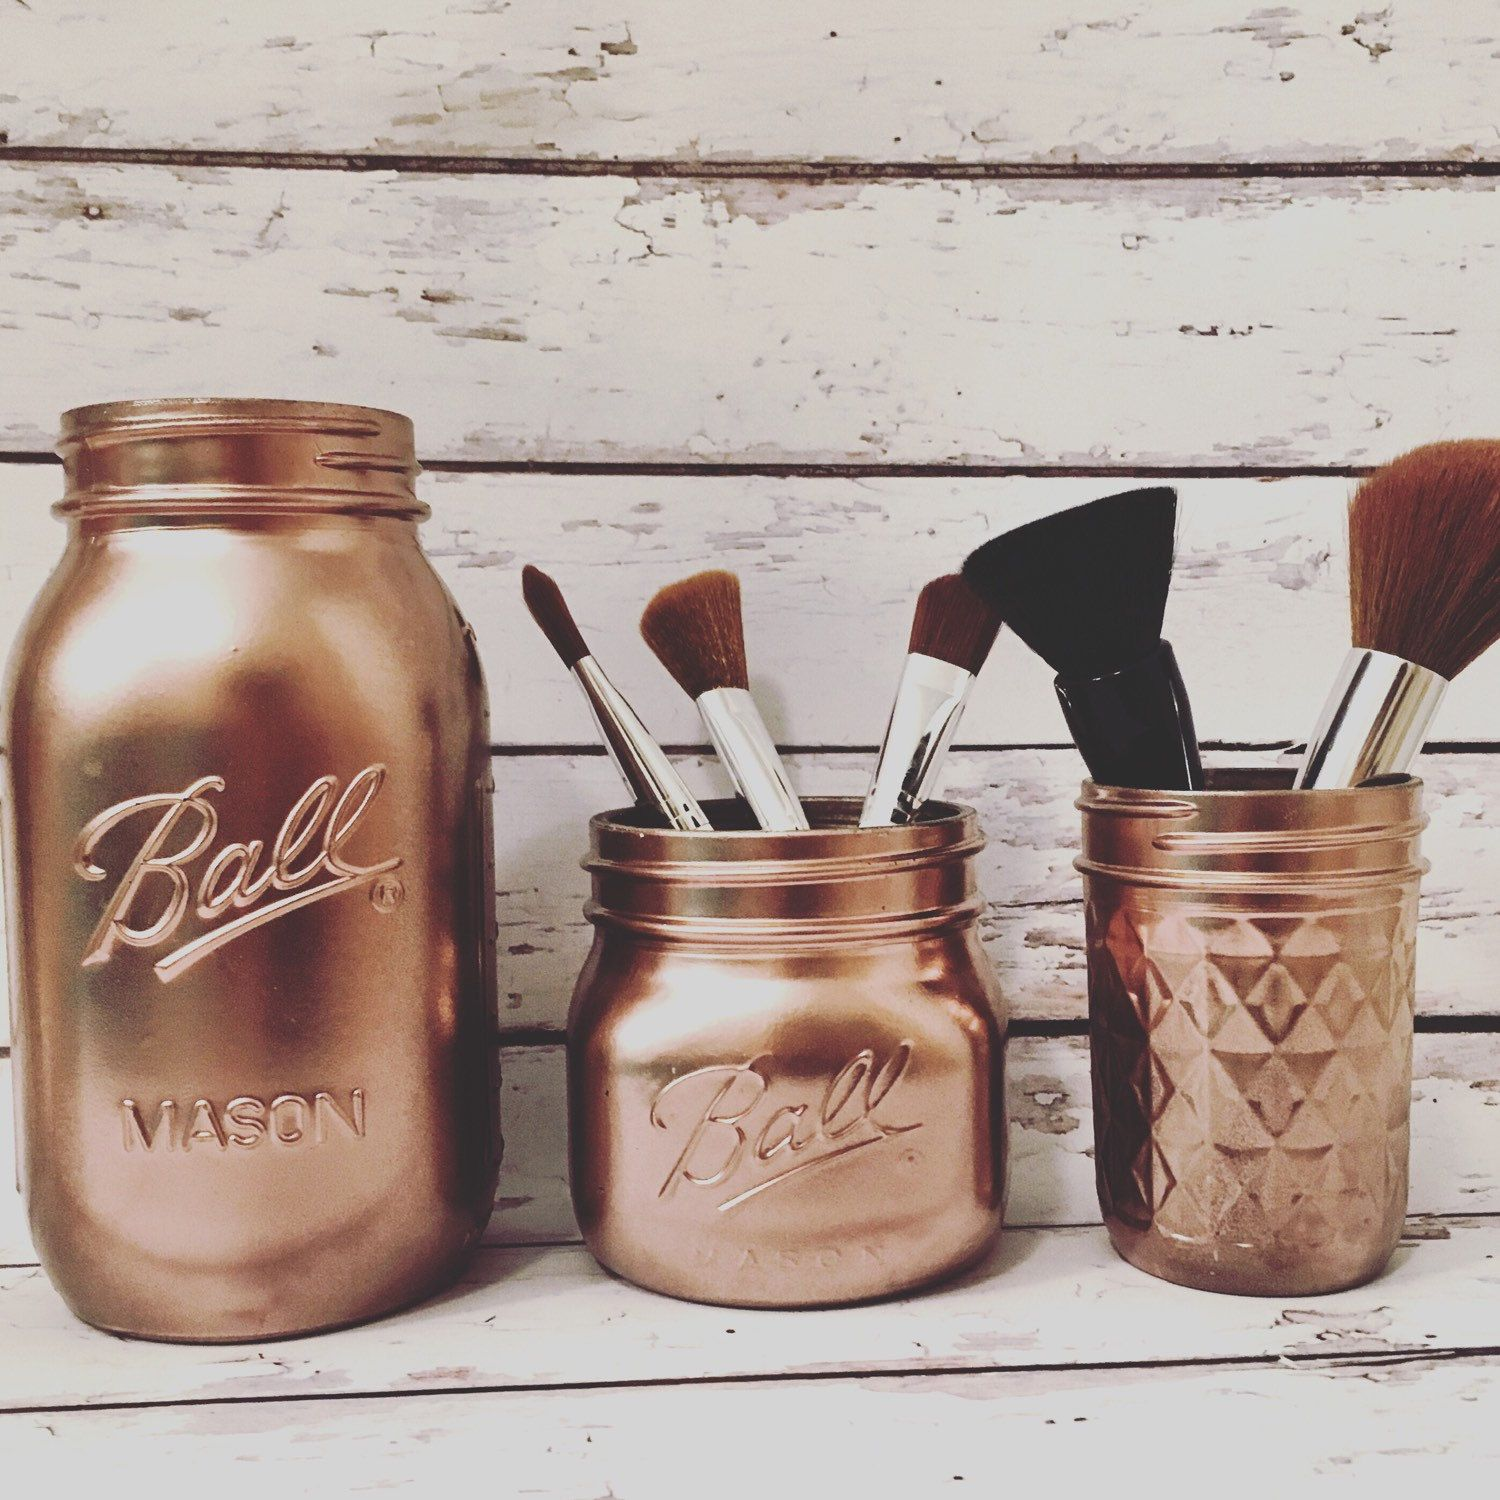 Bathroom Makeup Organizers - Makeup brush holder rustic bathroom decor makeup organizer make up holder makeup